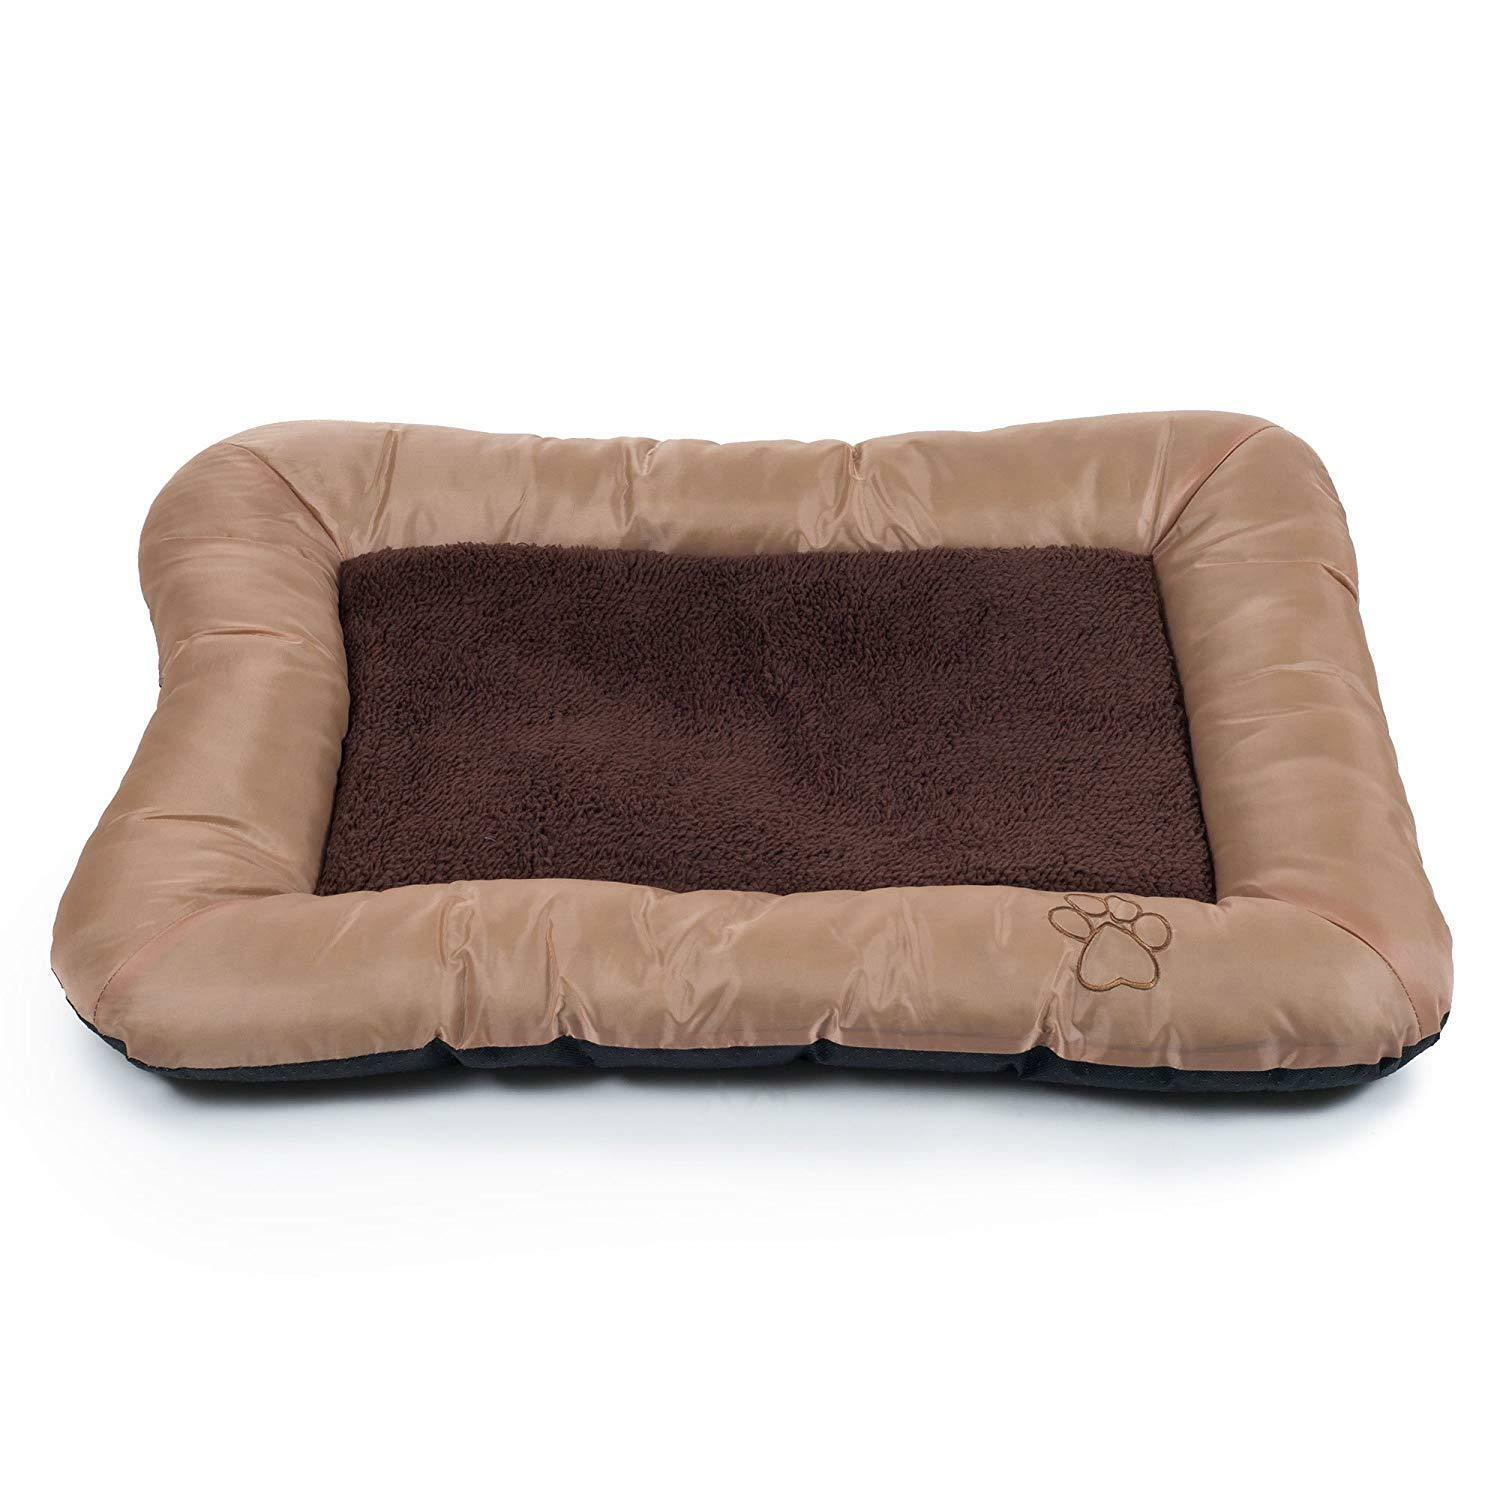 Paw Plush Cozy For Pet Dog Bed Tan Large  33 x24  Plush Cozy Pet Bed NEW